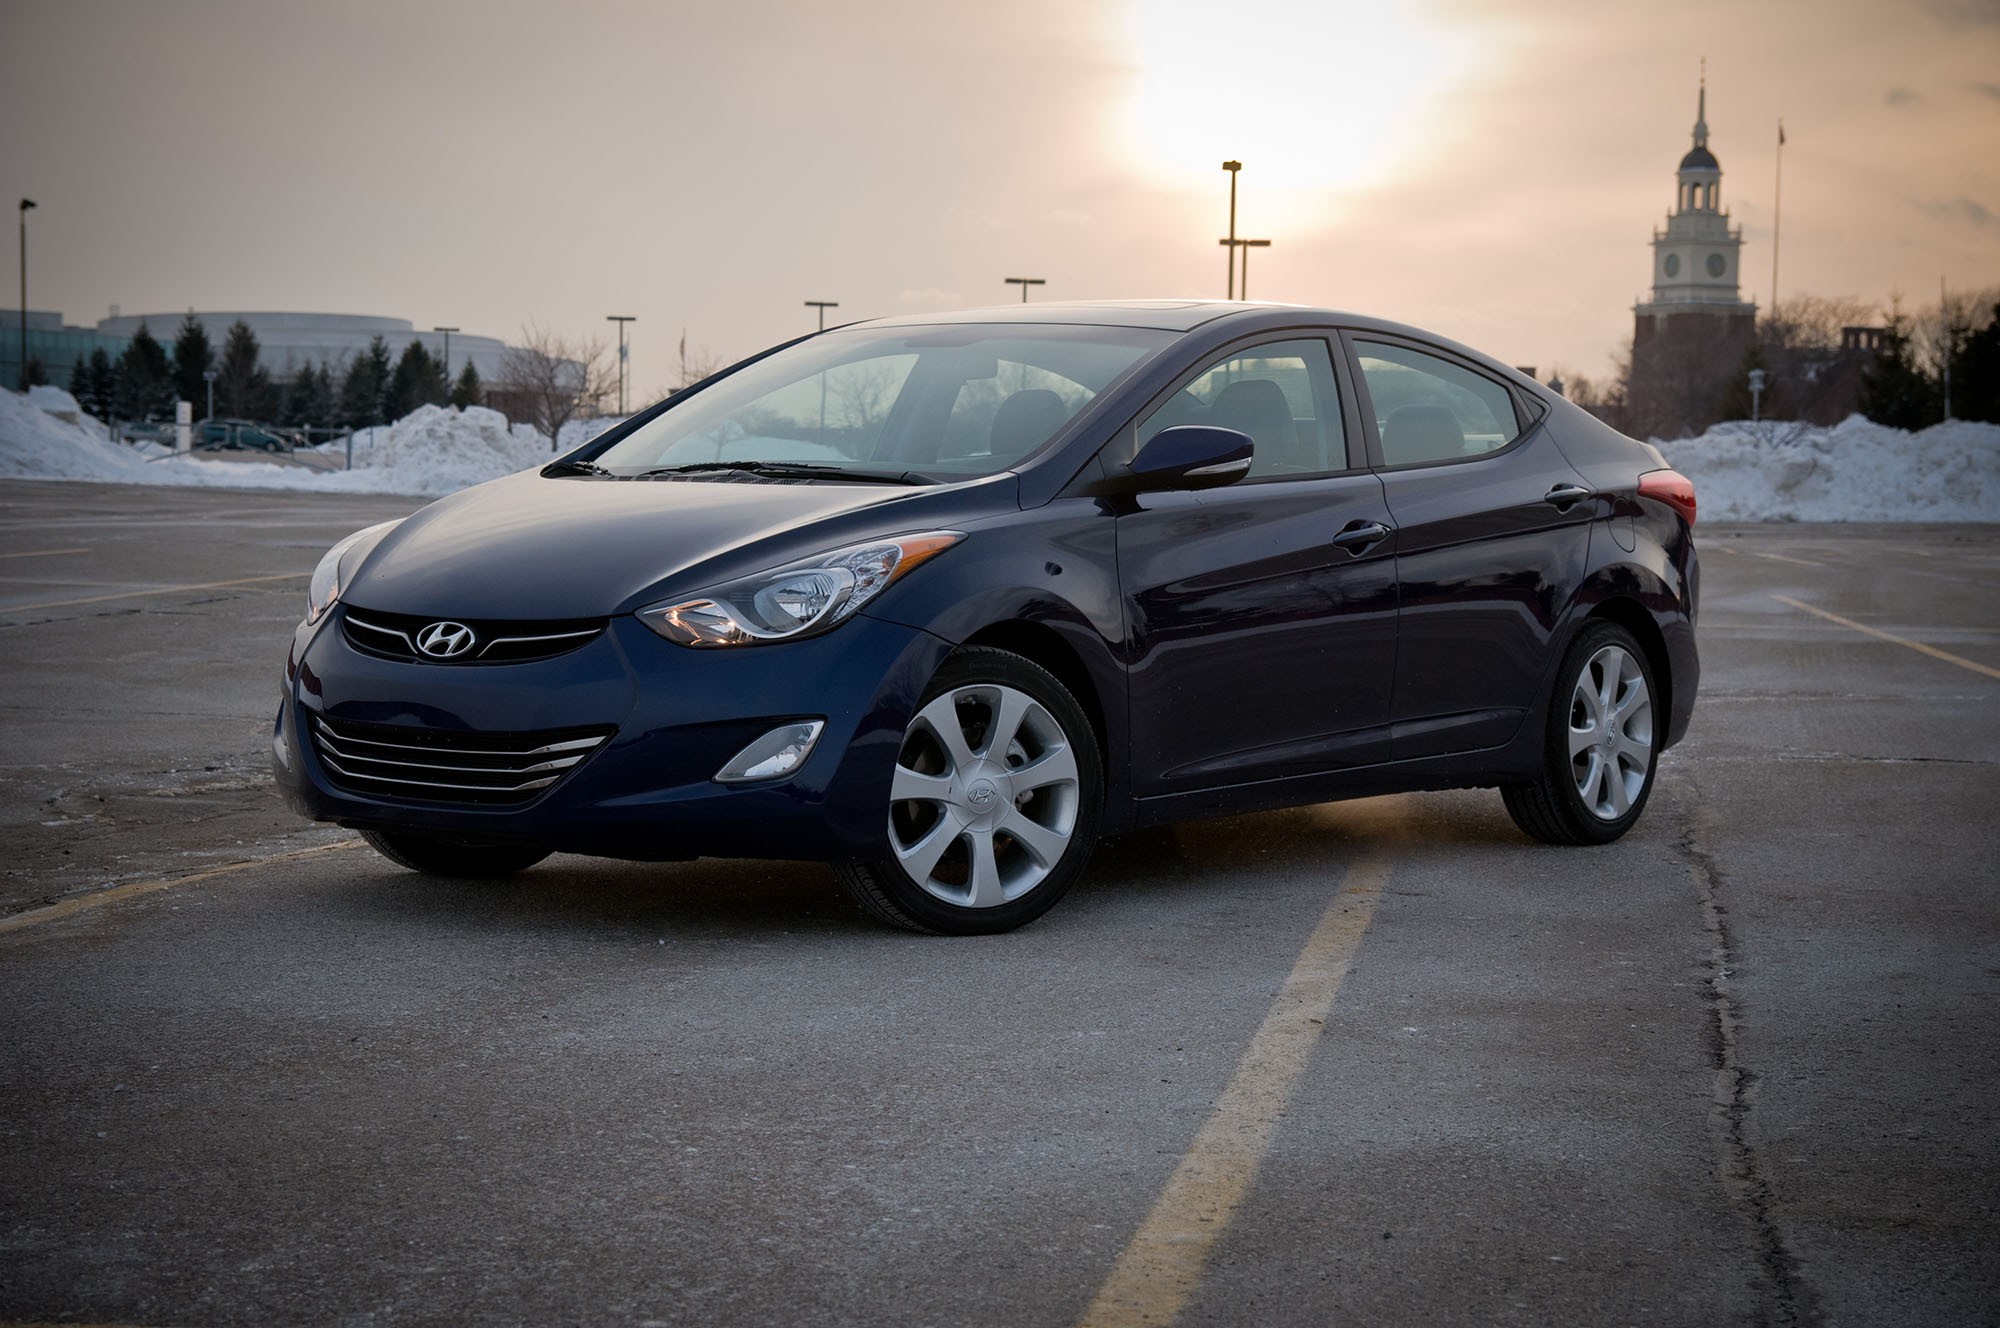 2012 model of navy blue hyundai elantra in a scenic view